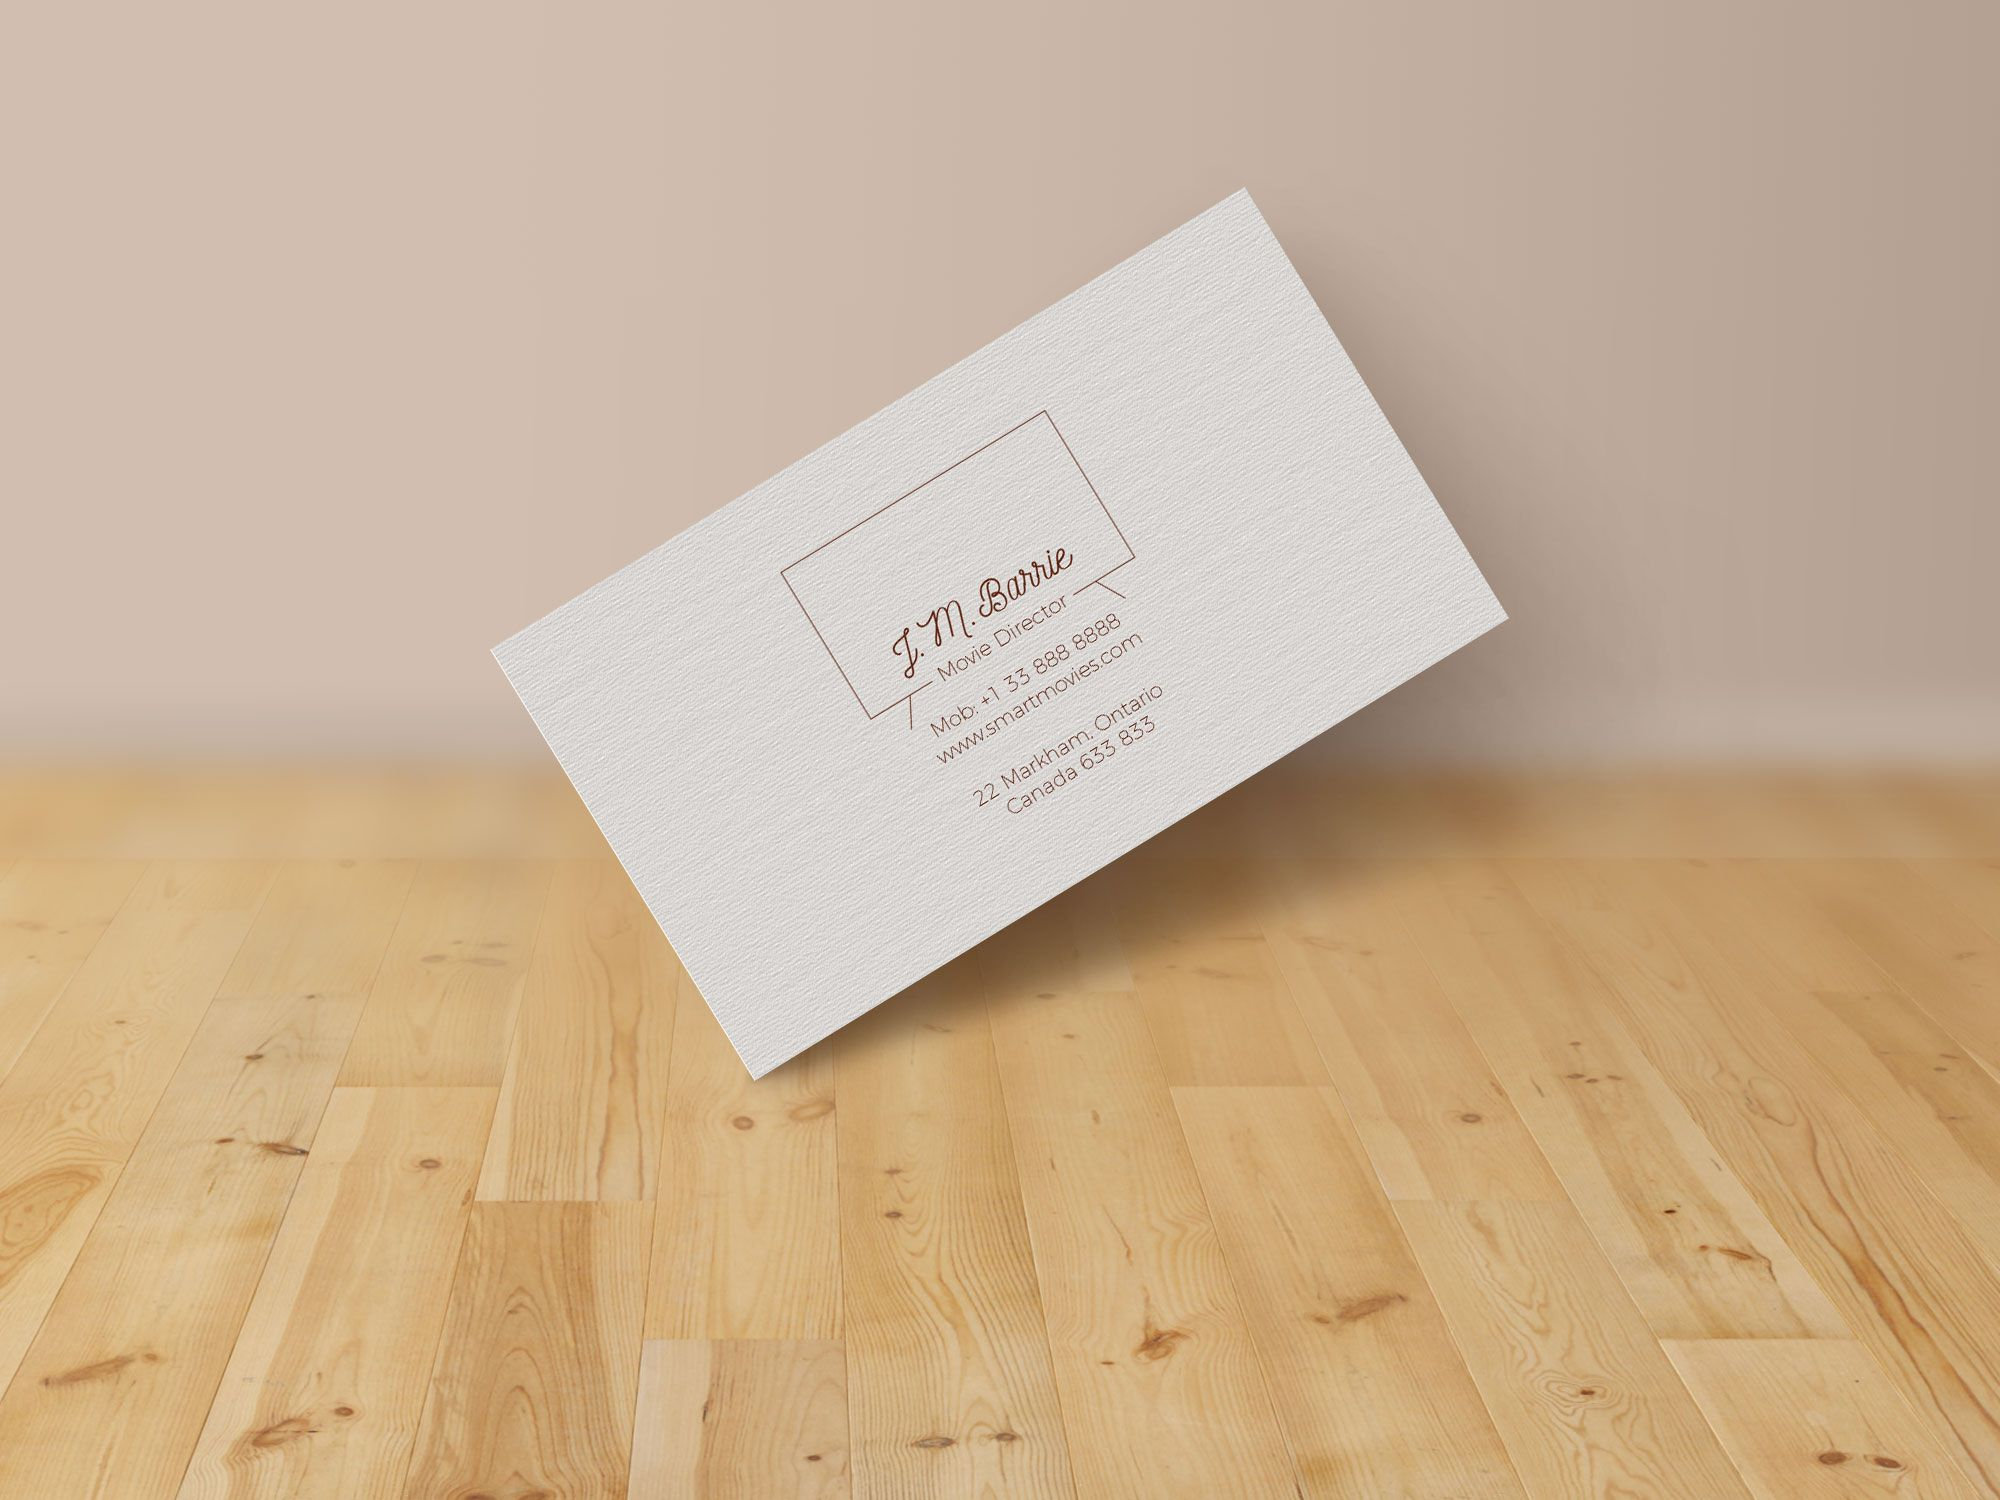 Free Extremely Simple Business Card Design & Mockup PSD | Design ...